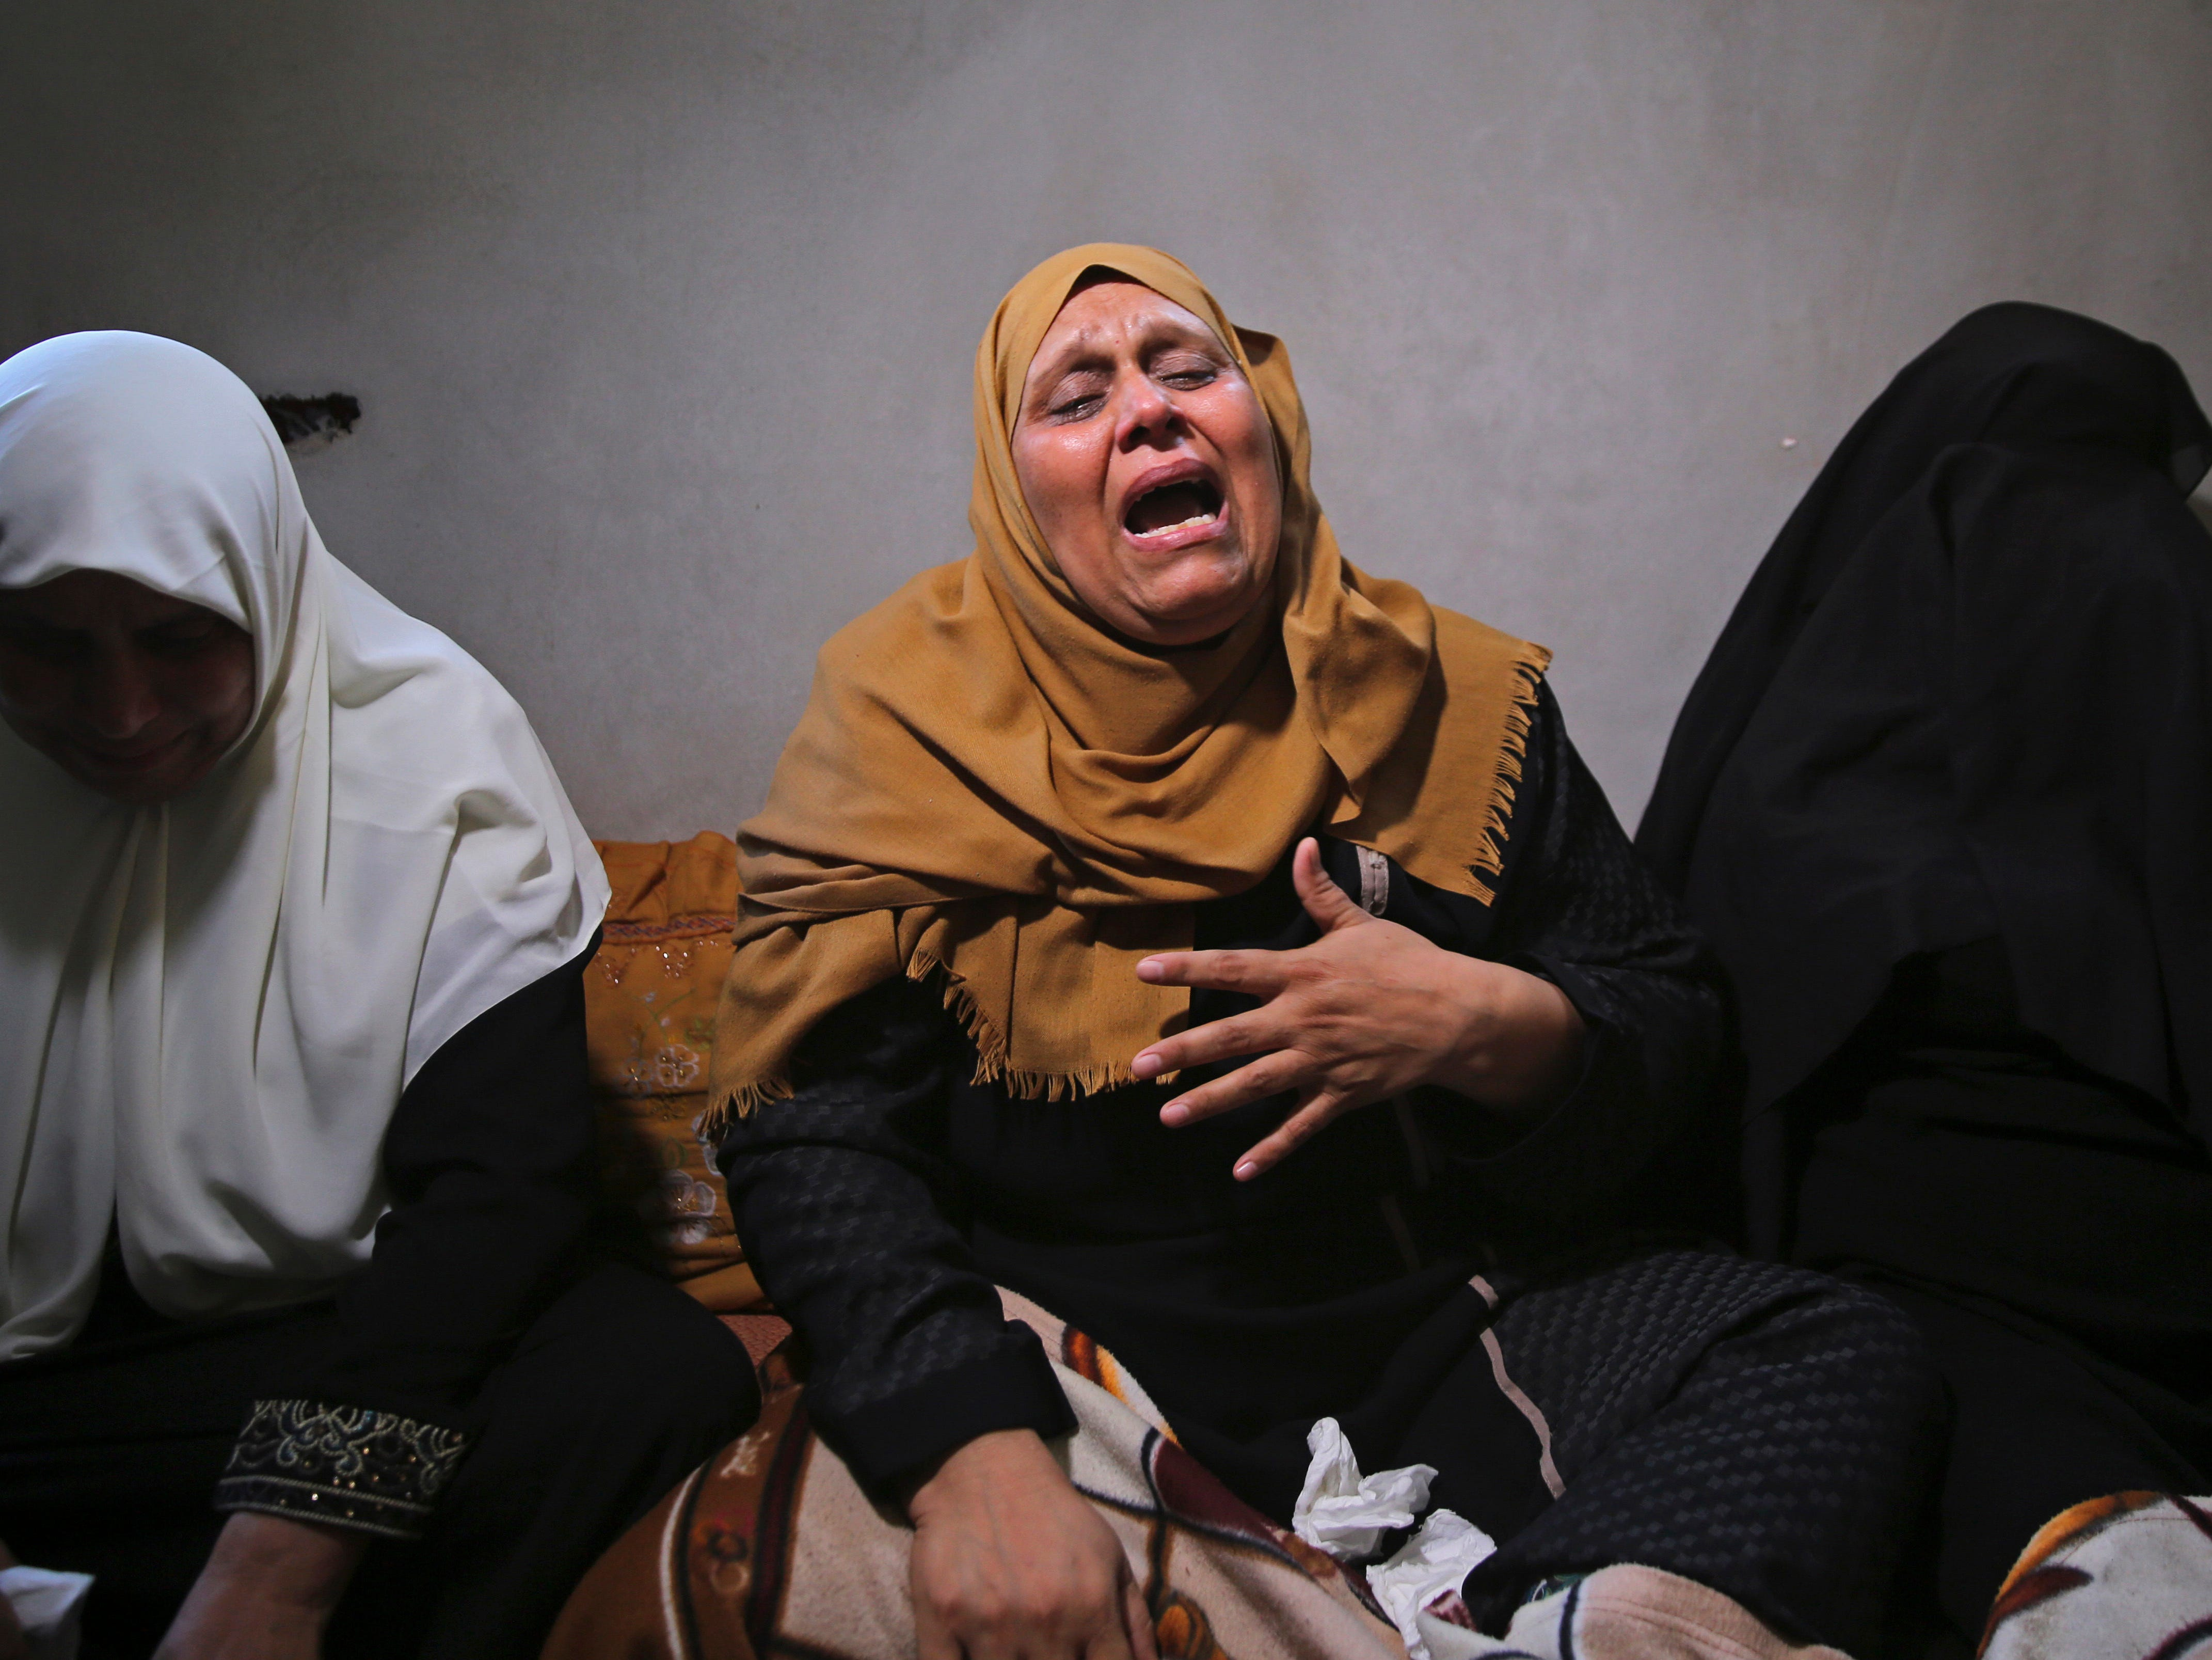 The mother of Ahamd Omar, 20, mourns while waiting with relatives for the body of her son at the family's house during his funeral in the Shati refugee camp, Wednesday, Sept. 19, 2018. Omar was killed Tuesday during a protest at the entrance of Erez border crossing between Gaza and Israel.